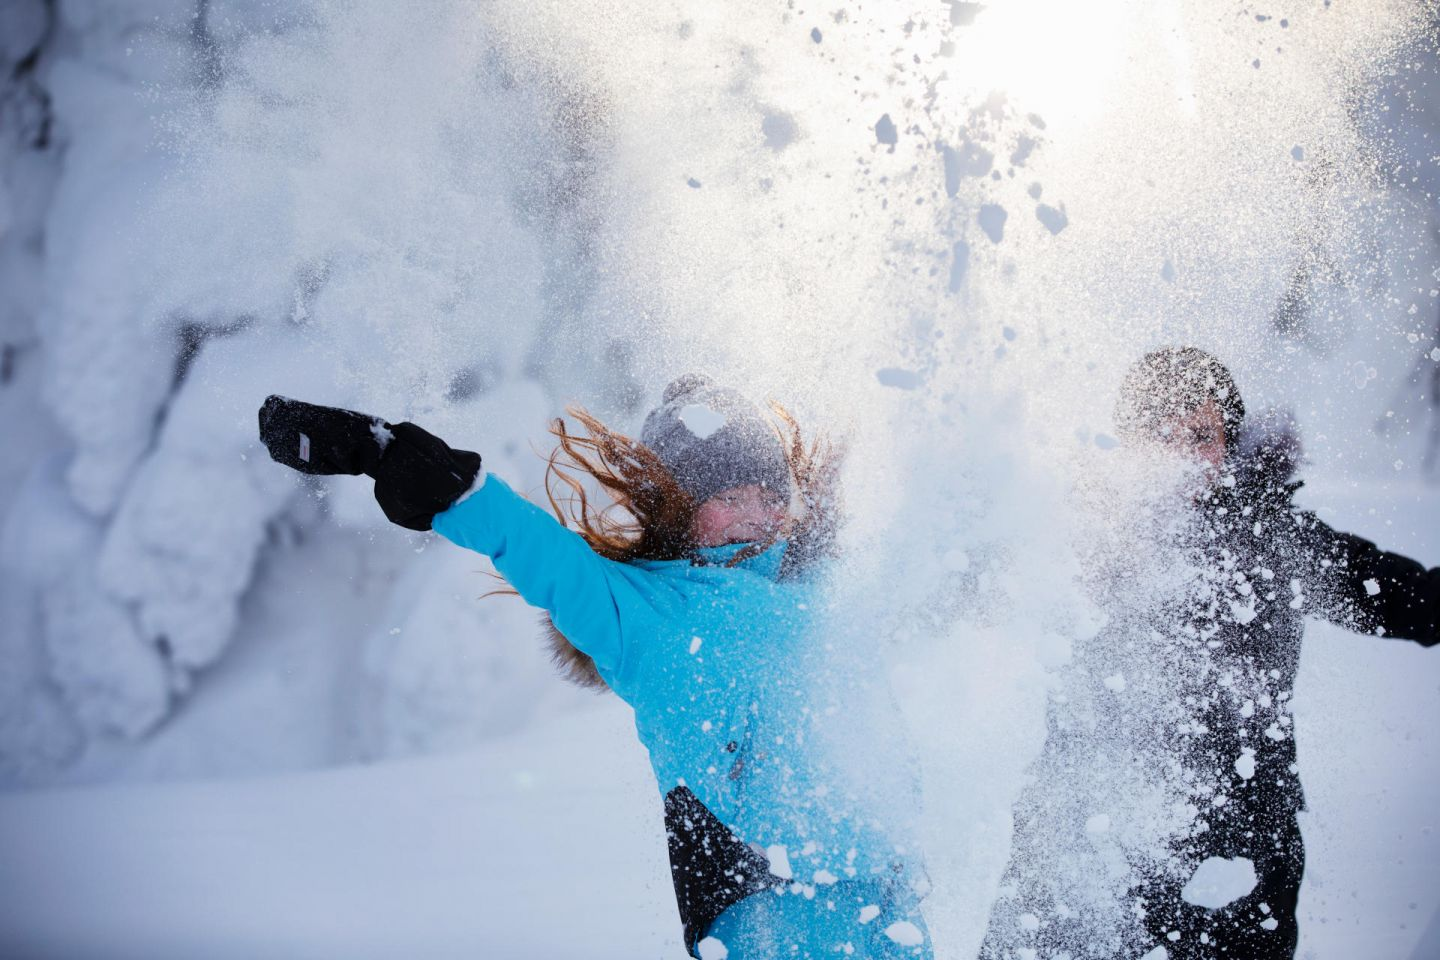 Fun in the snow in winter in Lapland